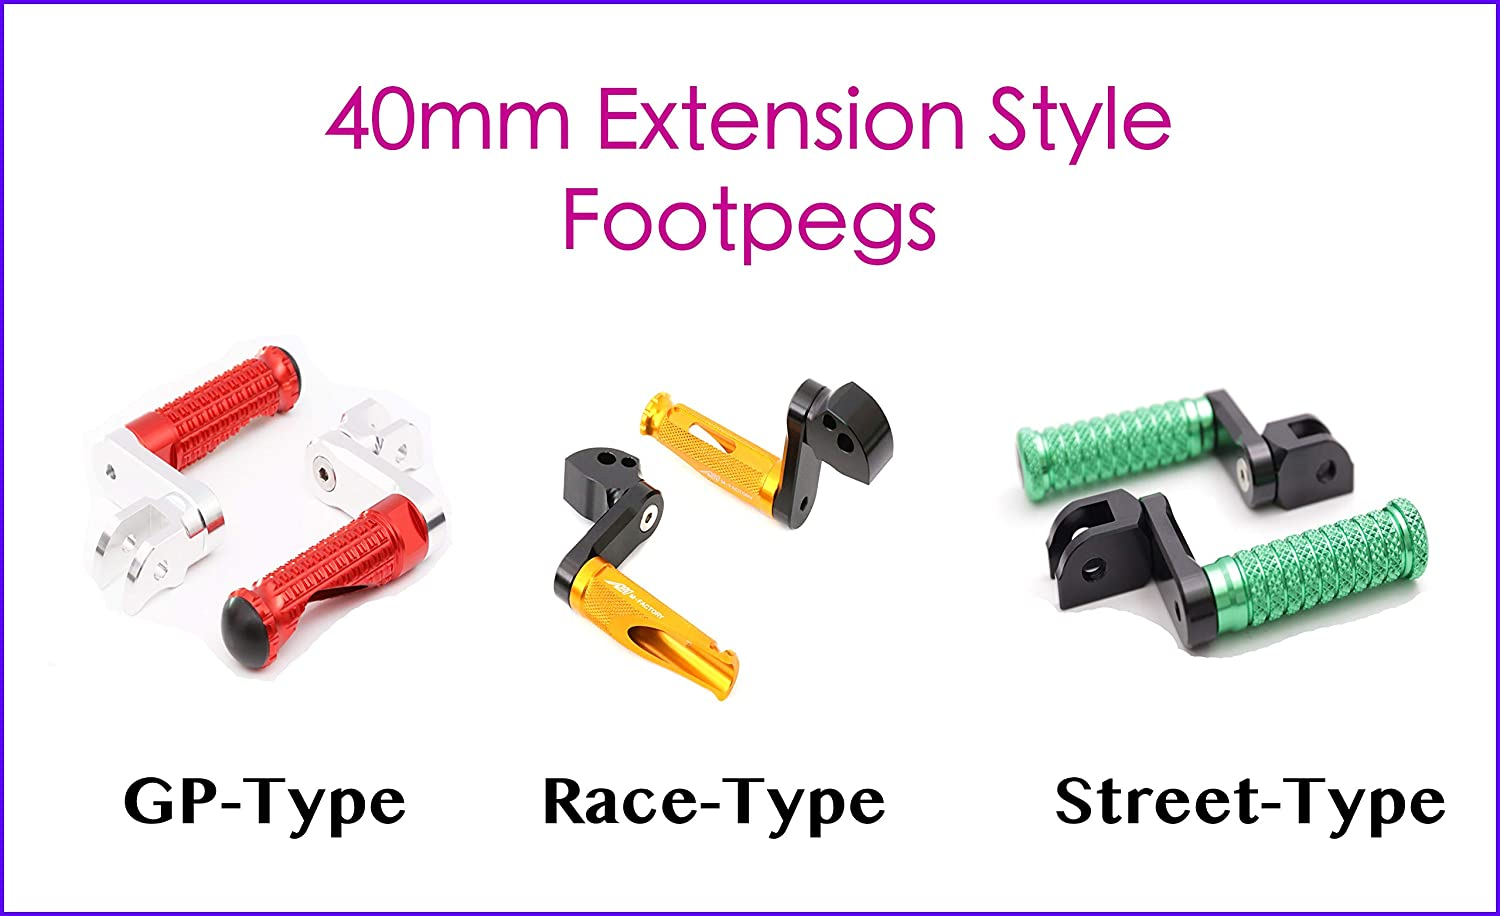 Front - STREET-Type with 40mm-Extension Autobahn88 Motorcycle Footpeg for Suzuki GSF 1250 S SA Bandit Black 2007-2018